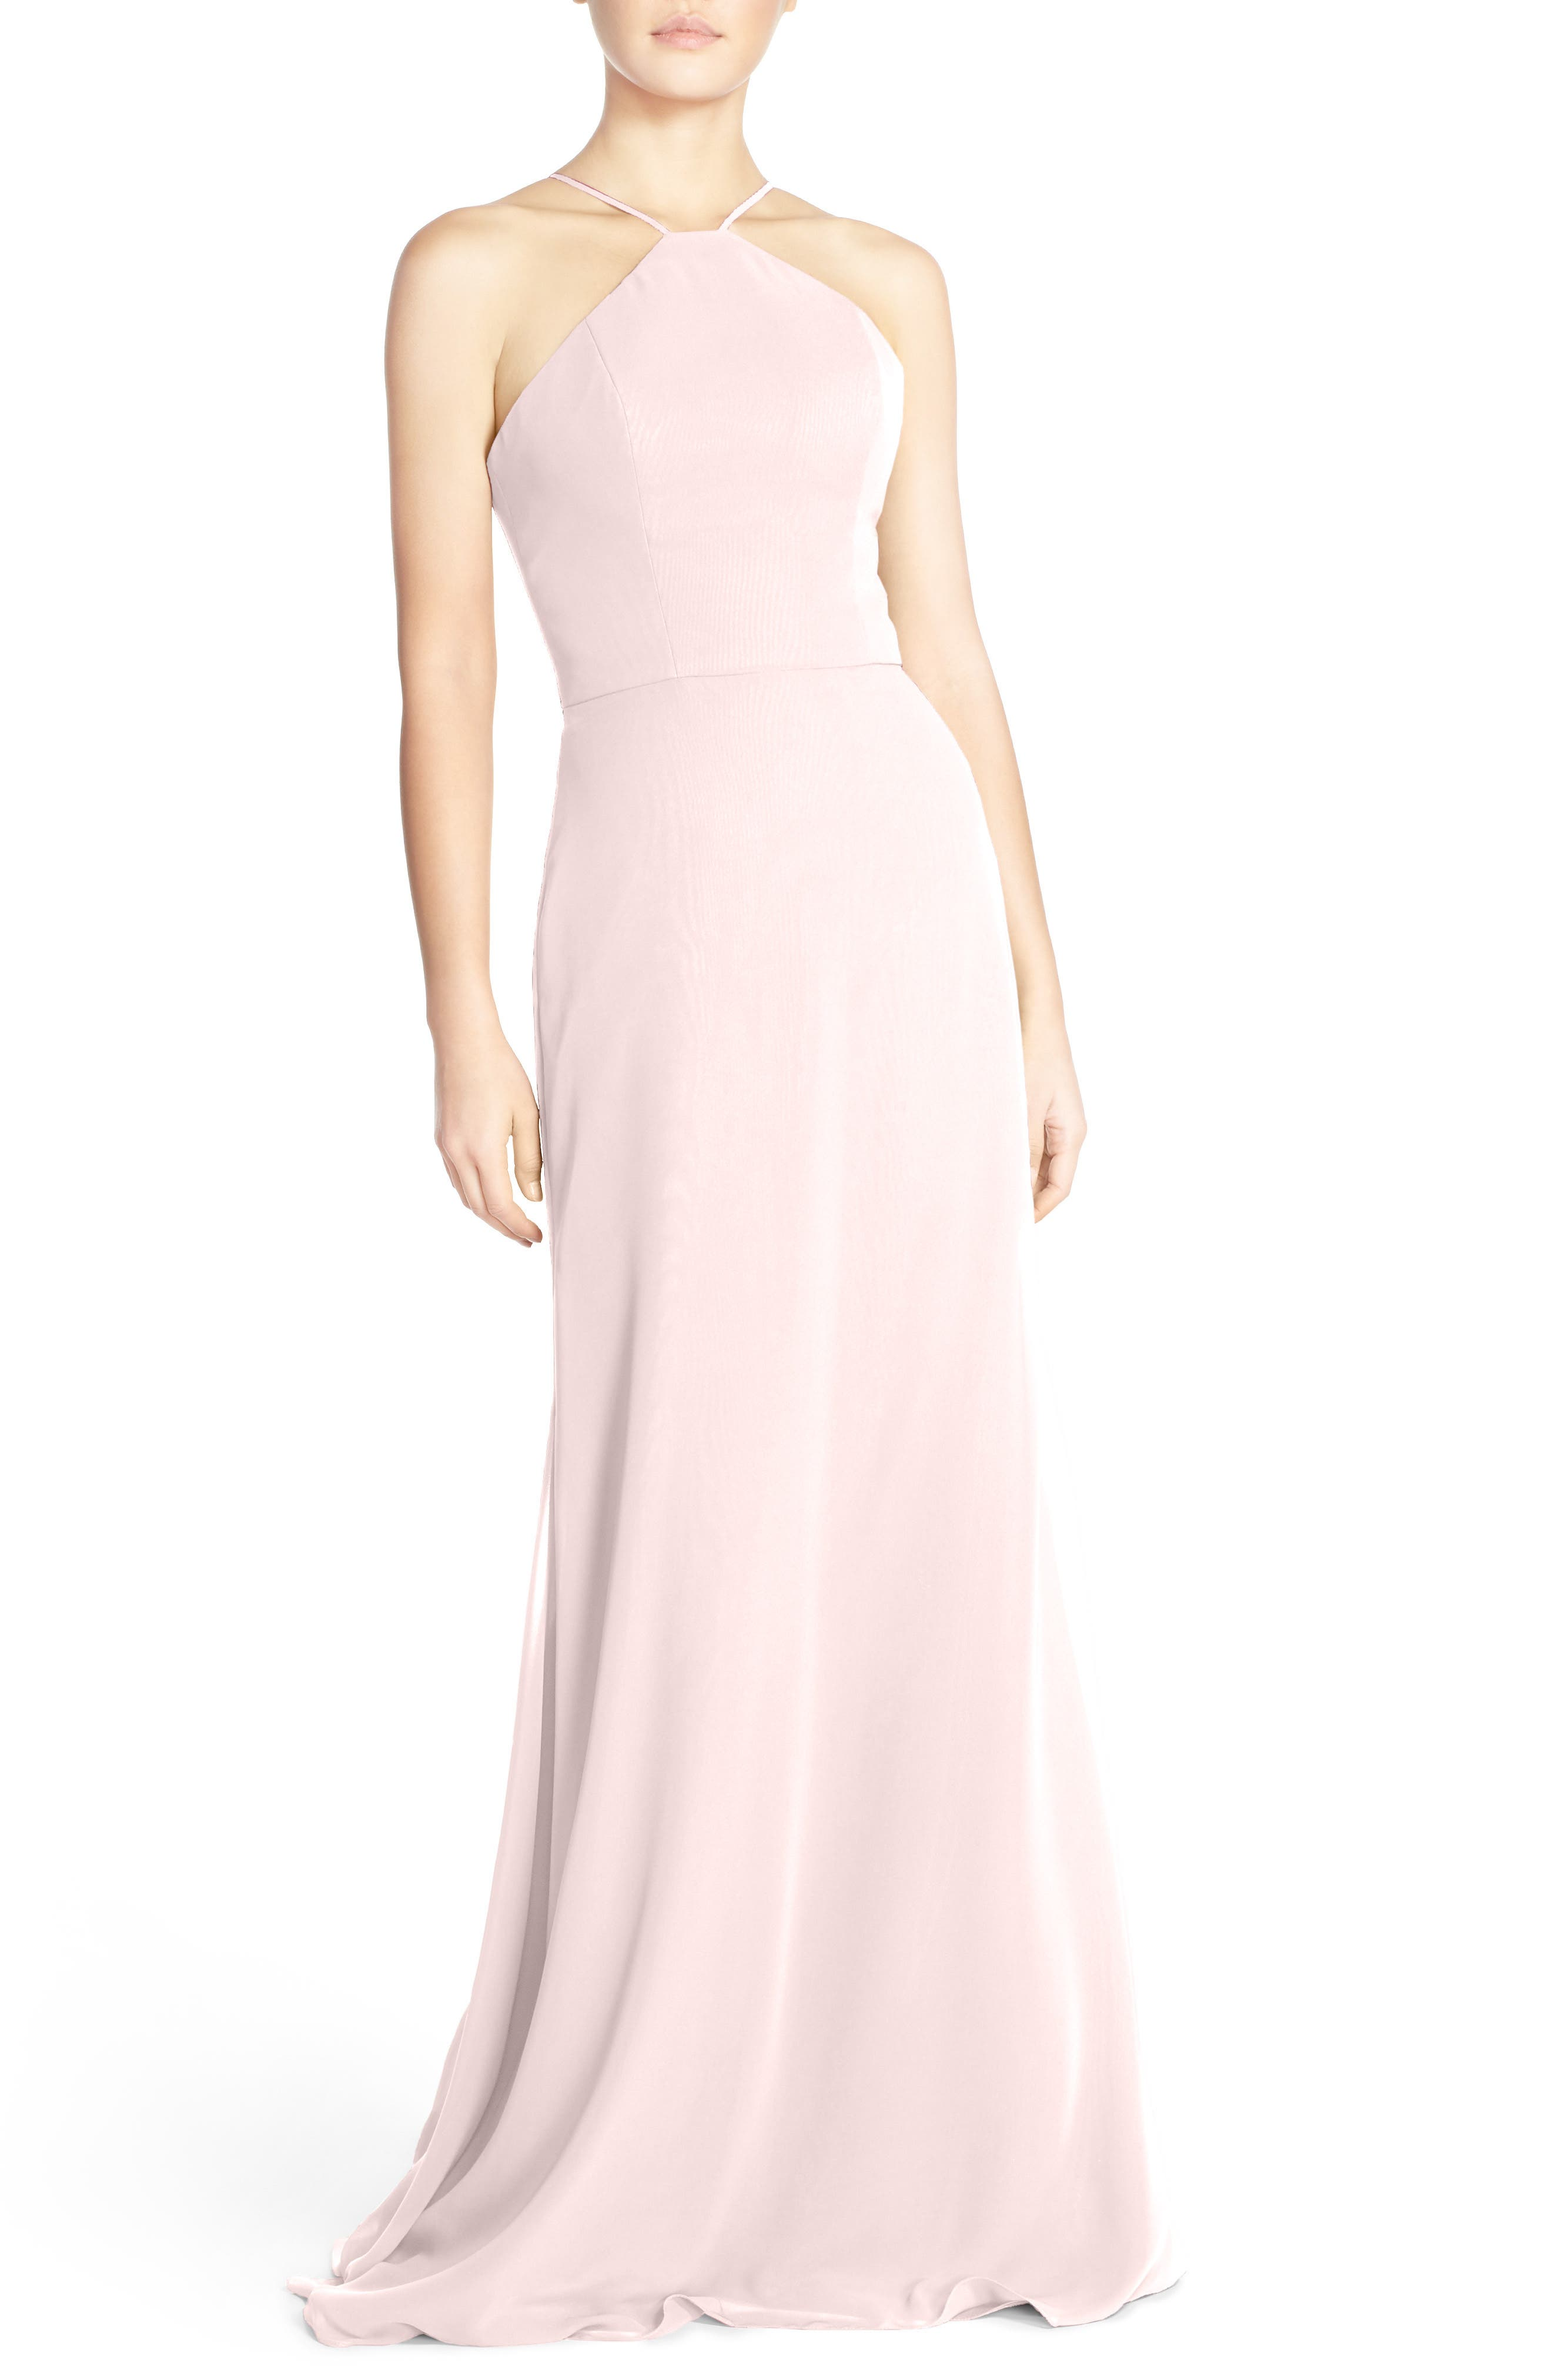 HAYLEY PAIGE OCCASIONS,                             Strappy V-Back Chiffon Halter Gown,                             Alternate thumbnail 2, color,                             BLUSH/ CASHMERE